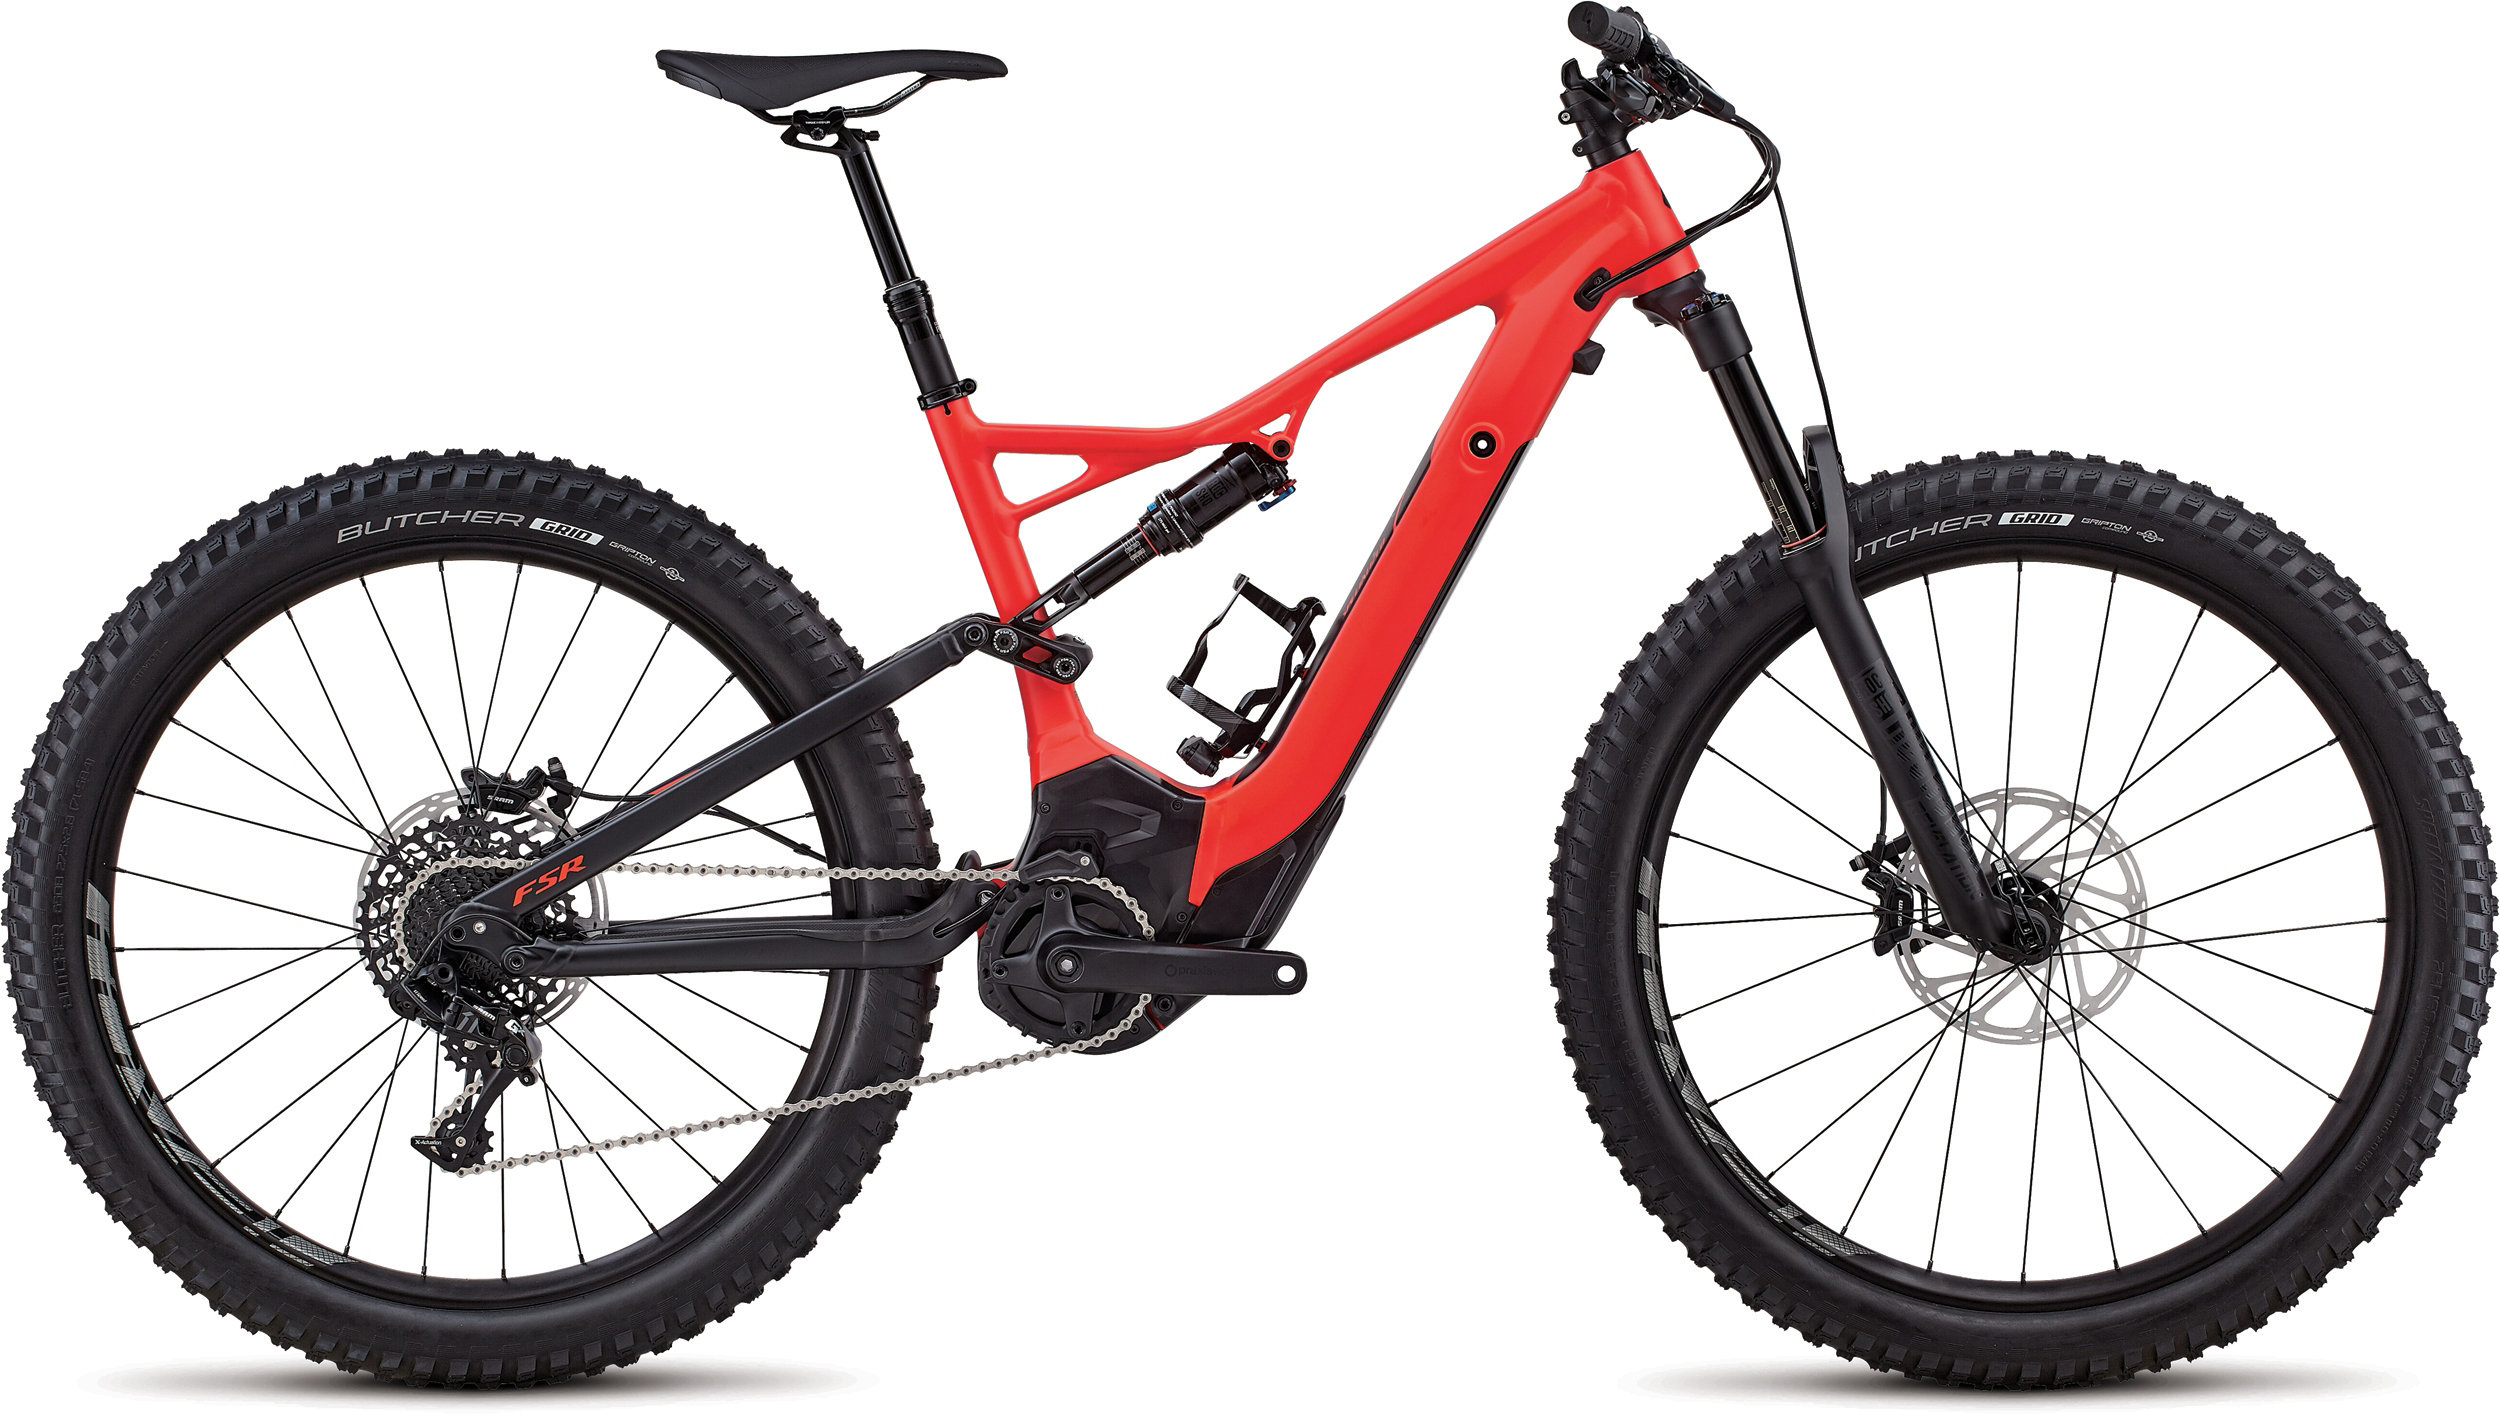 Specialized Men´s Turbo Levo FSR Comp 6Fattie/29 Rocket Red / Black L - Specialized Men´s Turbo Levo FSR Comp 6Fattie/29 Rocket Red / Black L